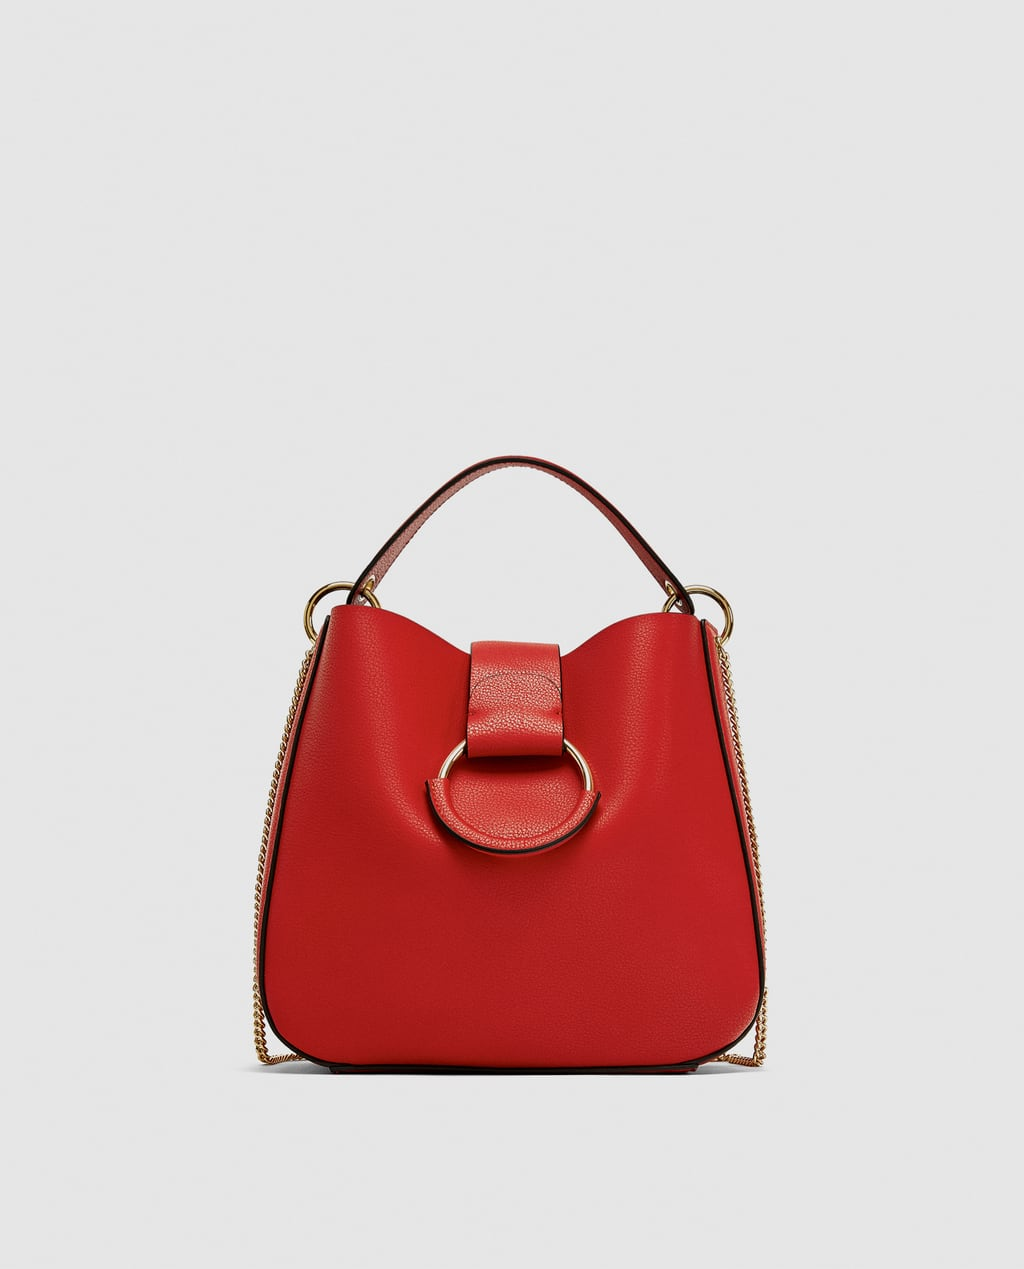 Zara Red handbag